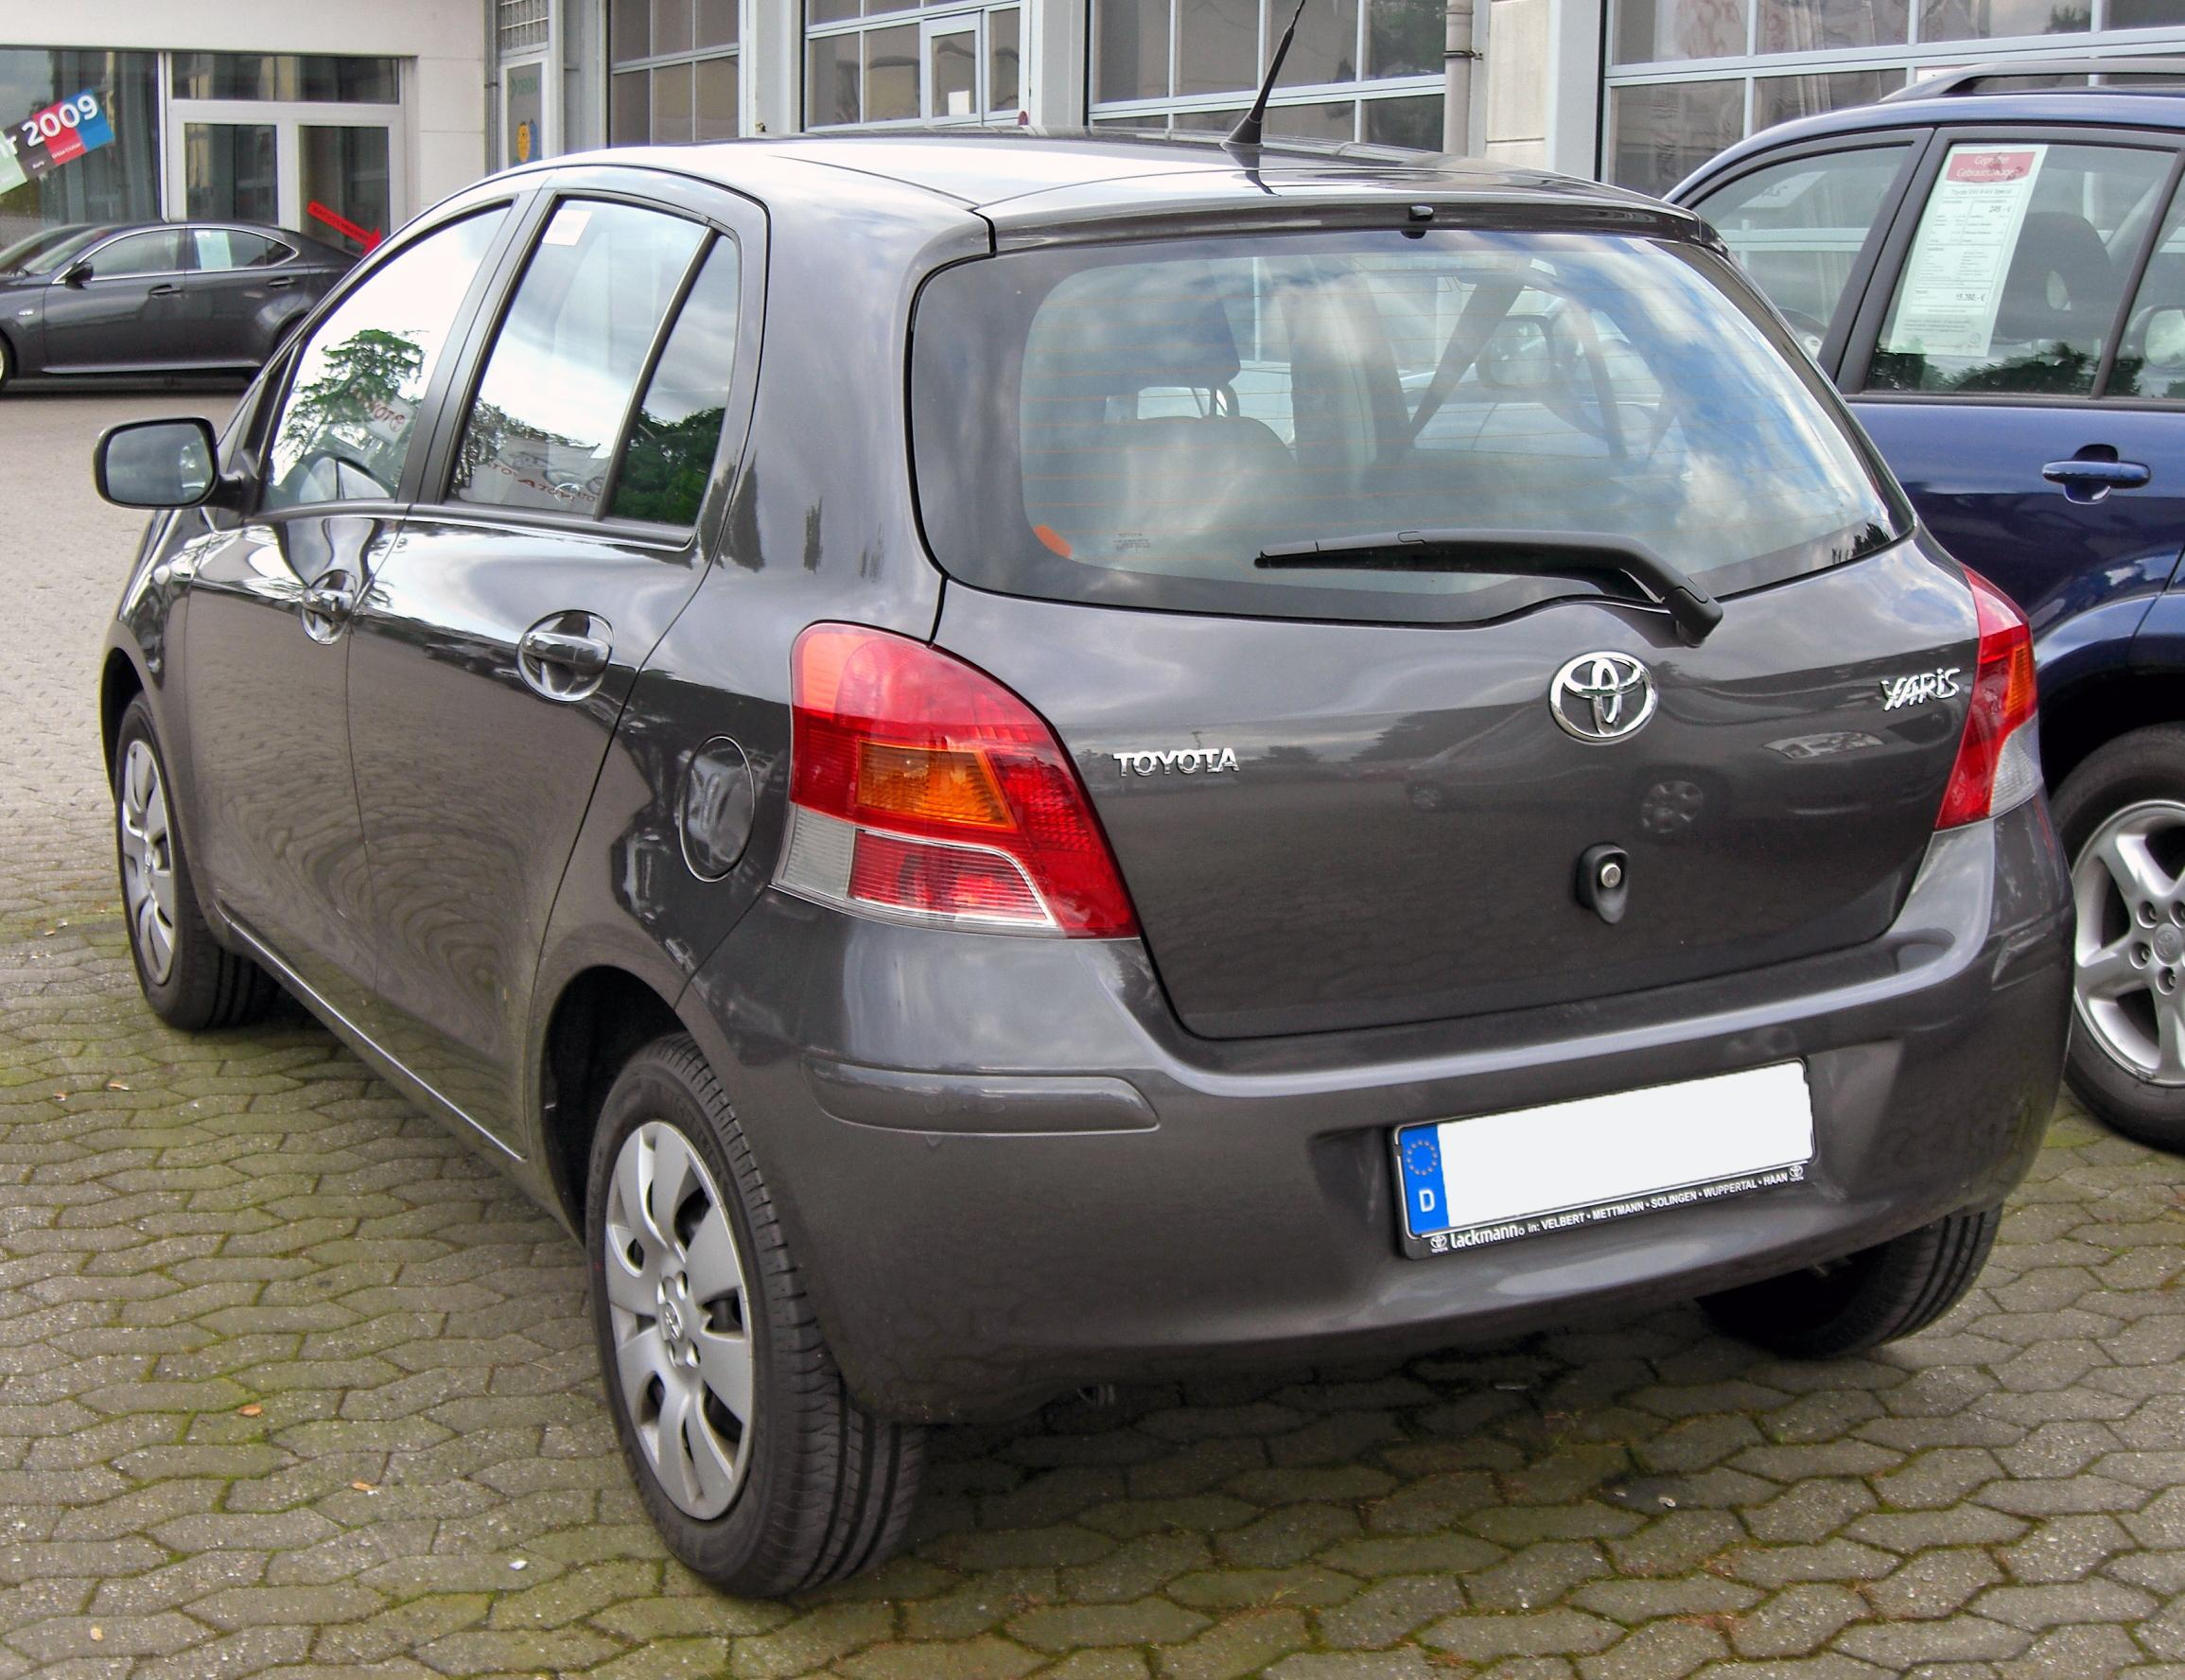 file toyota yaris ii facelift 20090517 rear jpg wikipedia. Black Bedroom Furniture Sets. Home Design Ideas